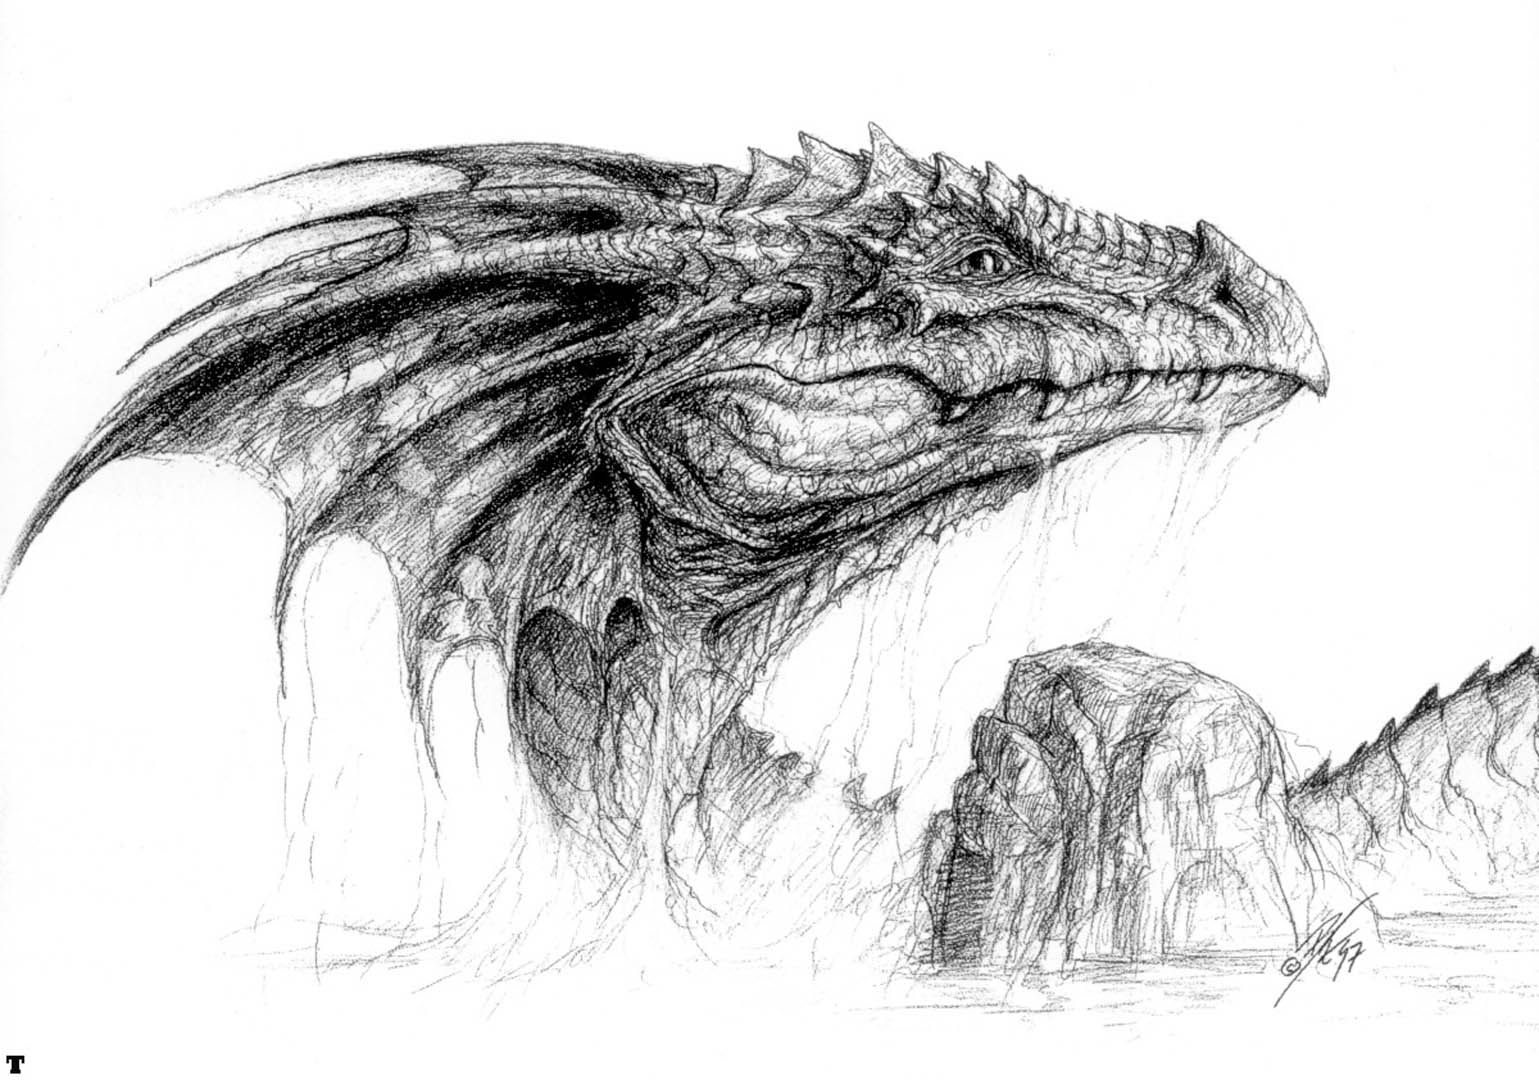 98 Sketch Wallpapers Wallpaper Cave Sketches Wallpapers: Dragon Head Wallpapers